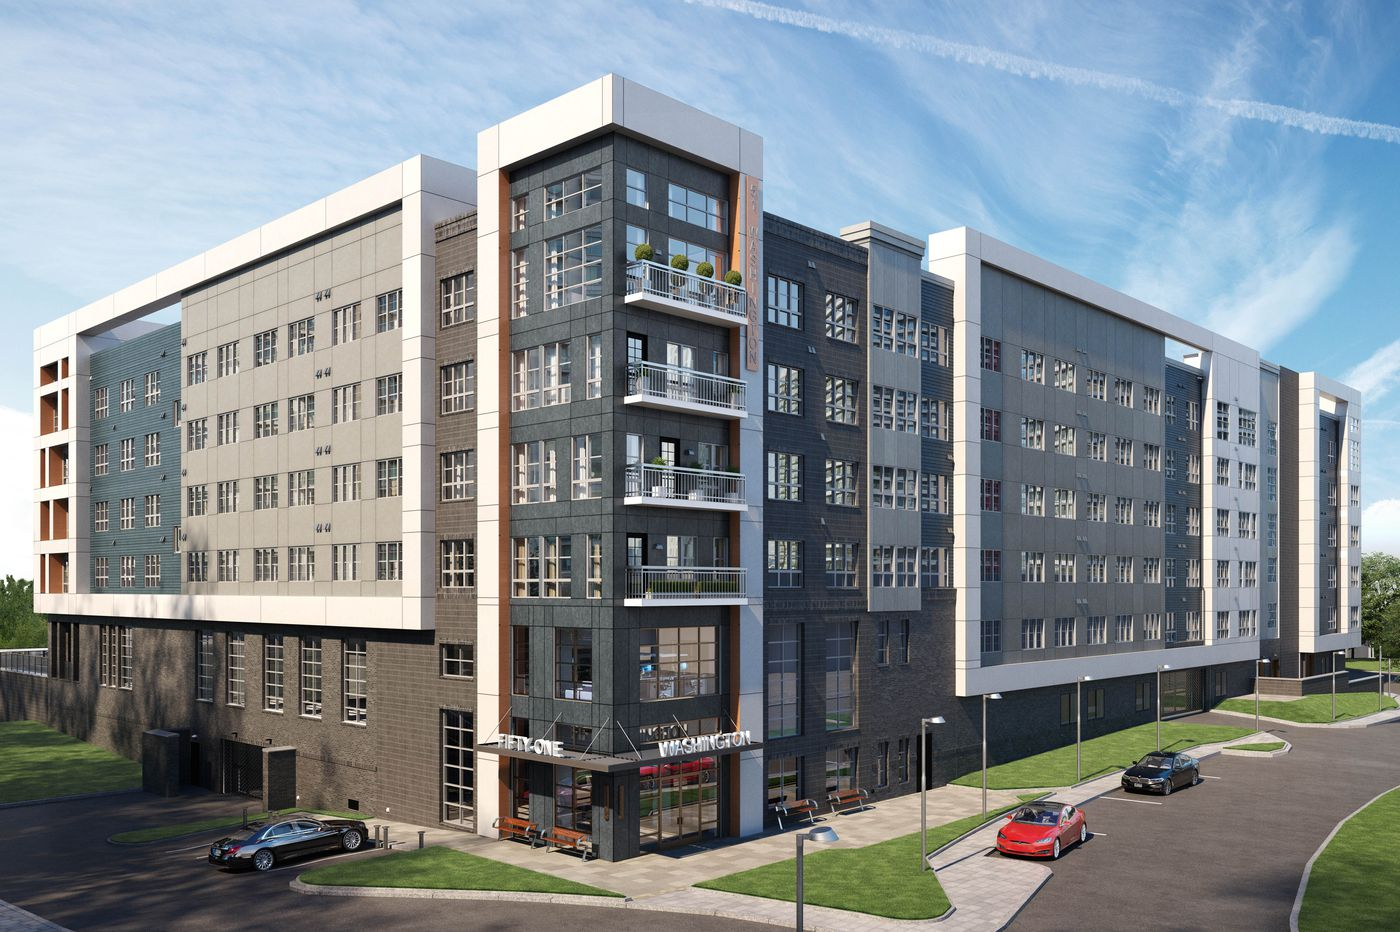 The Conshohocken building boom continues with a big apartment complex near SEPTA train